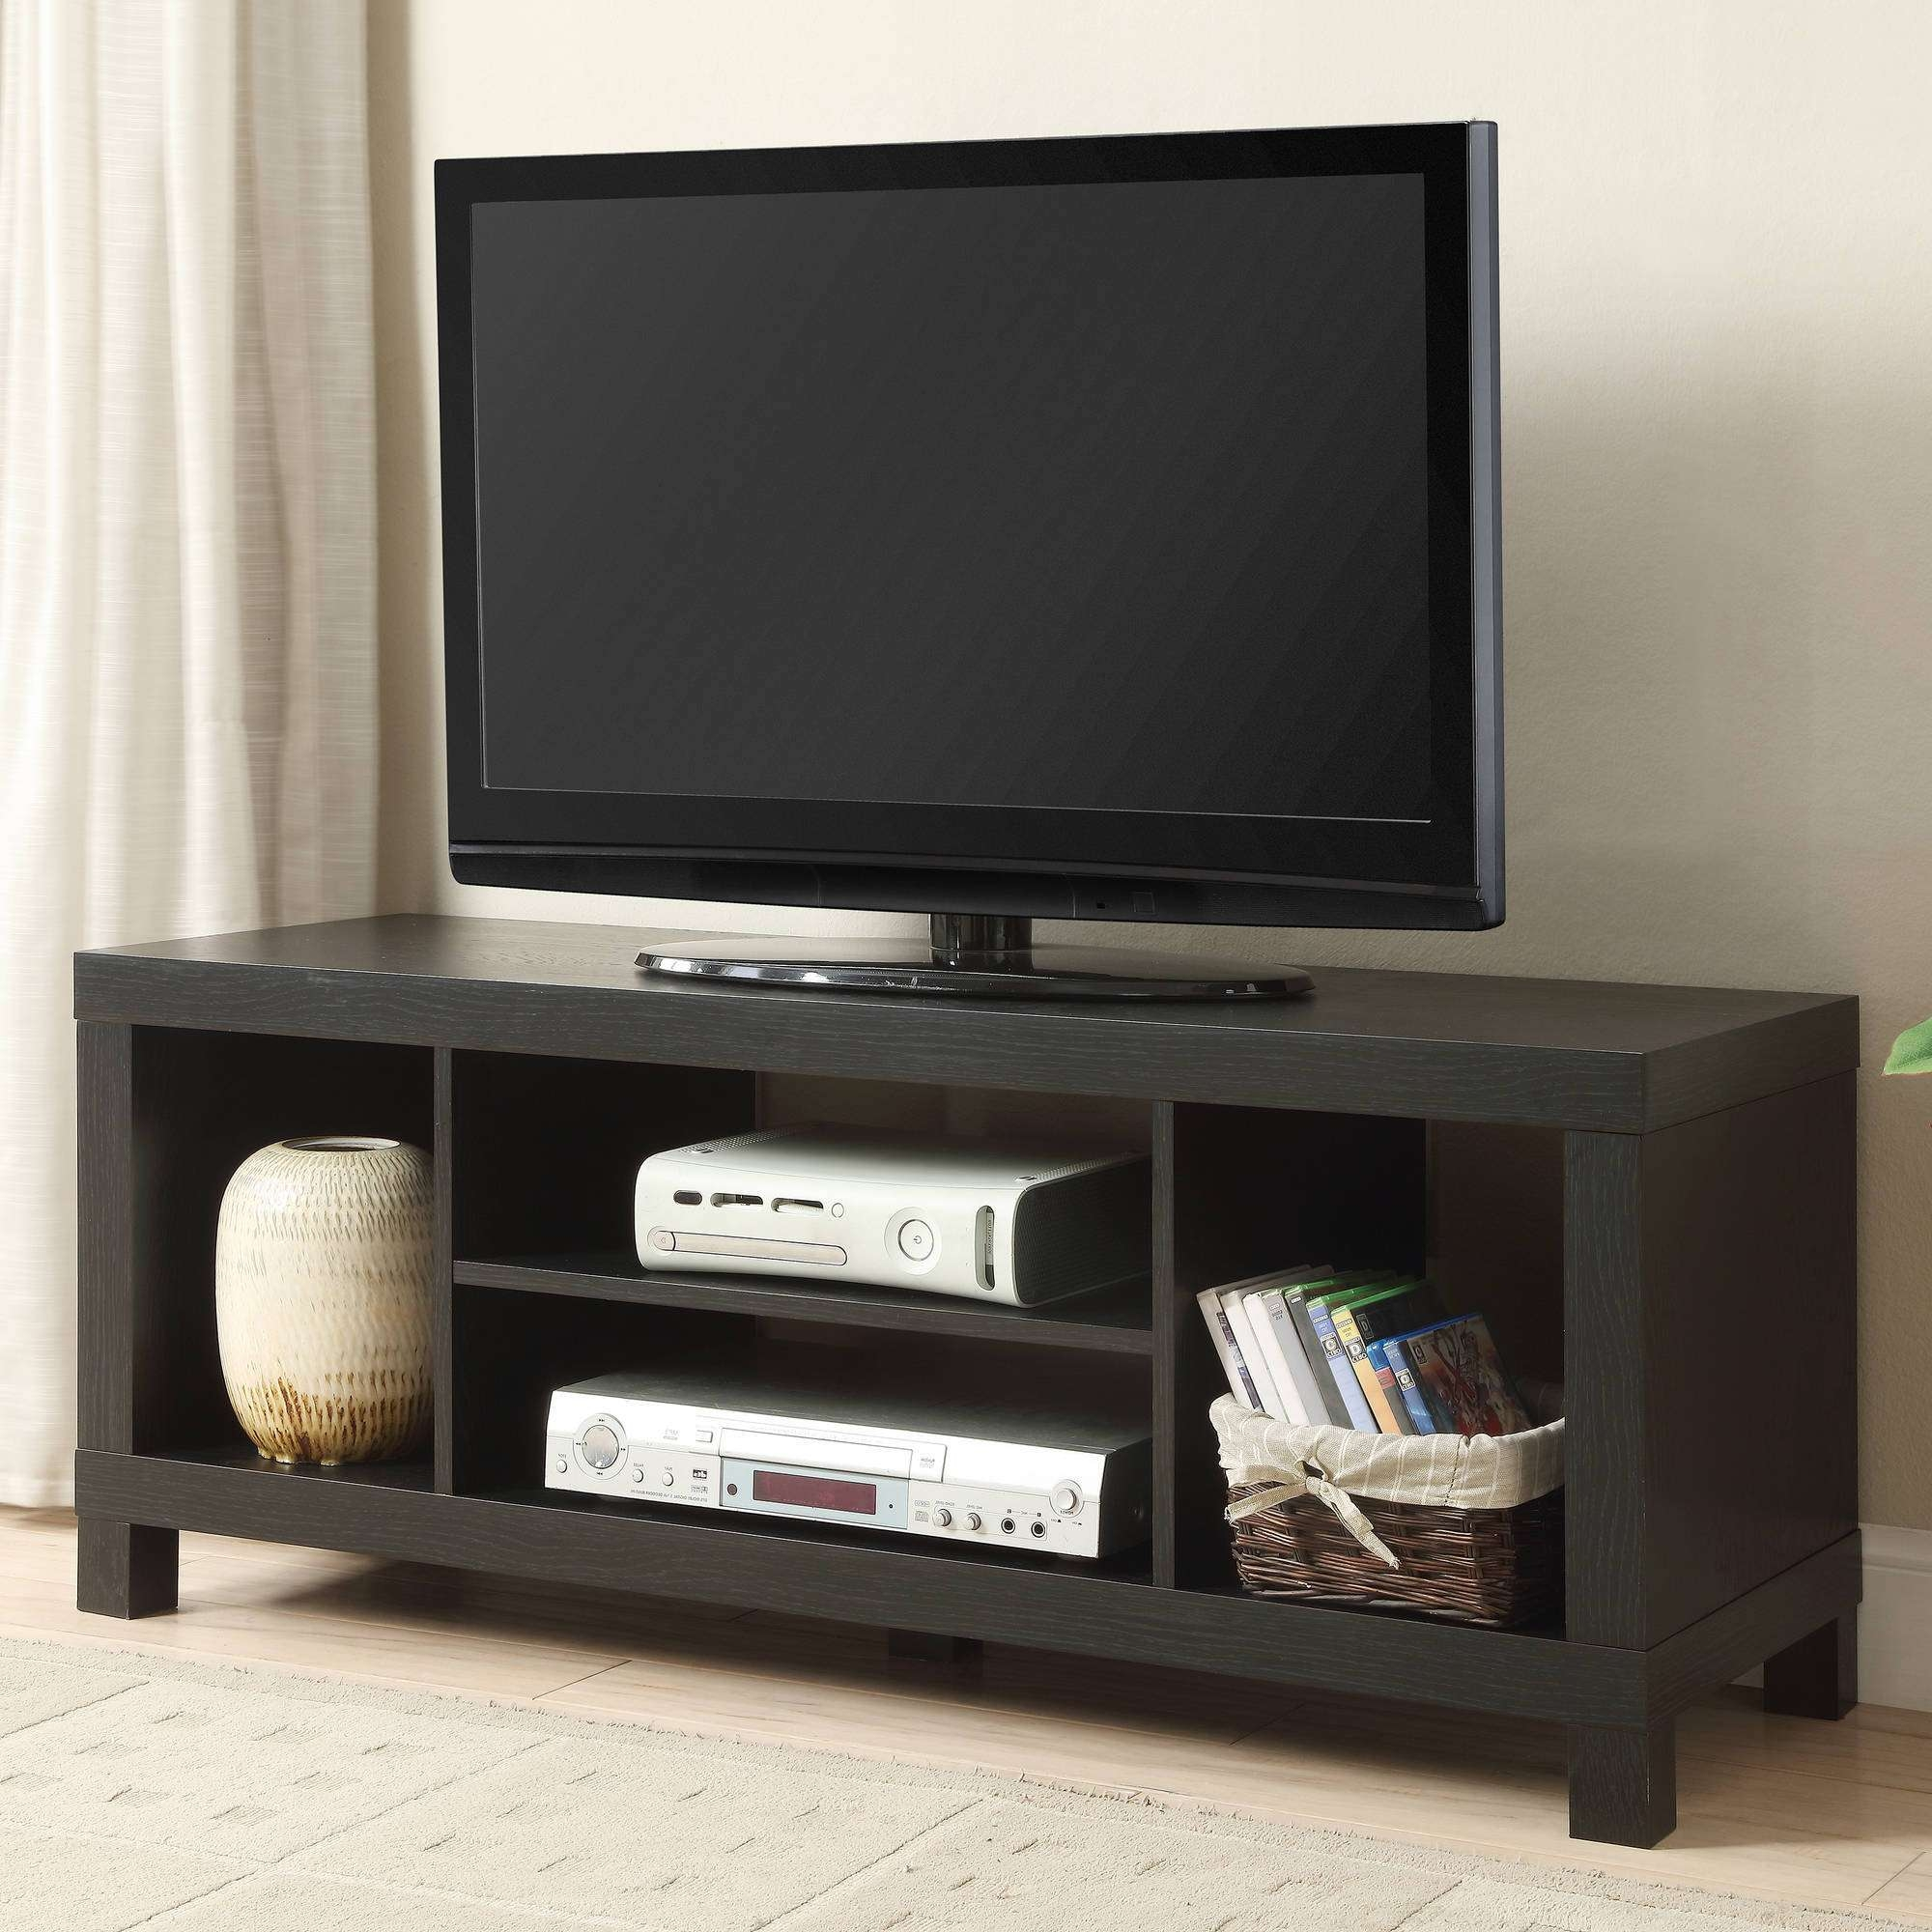 "Black Oak Tv Stand For Tvs Up To 42"" – Walmart With Regard To Wood Tv Stands With Glass Top (View 2 of 15)"